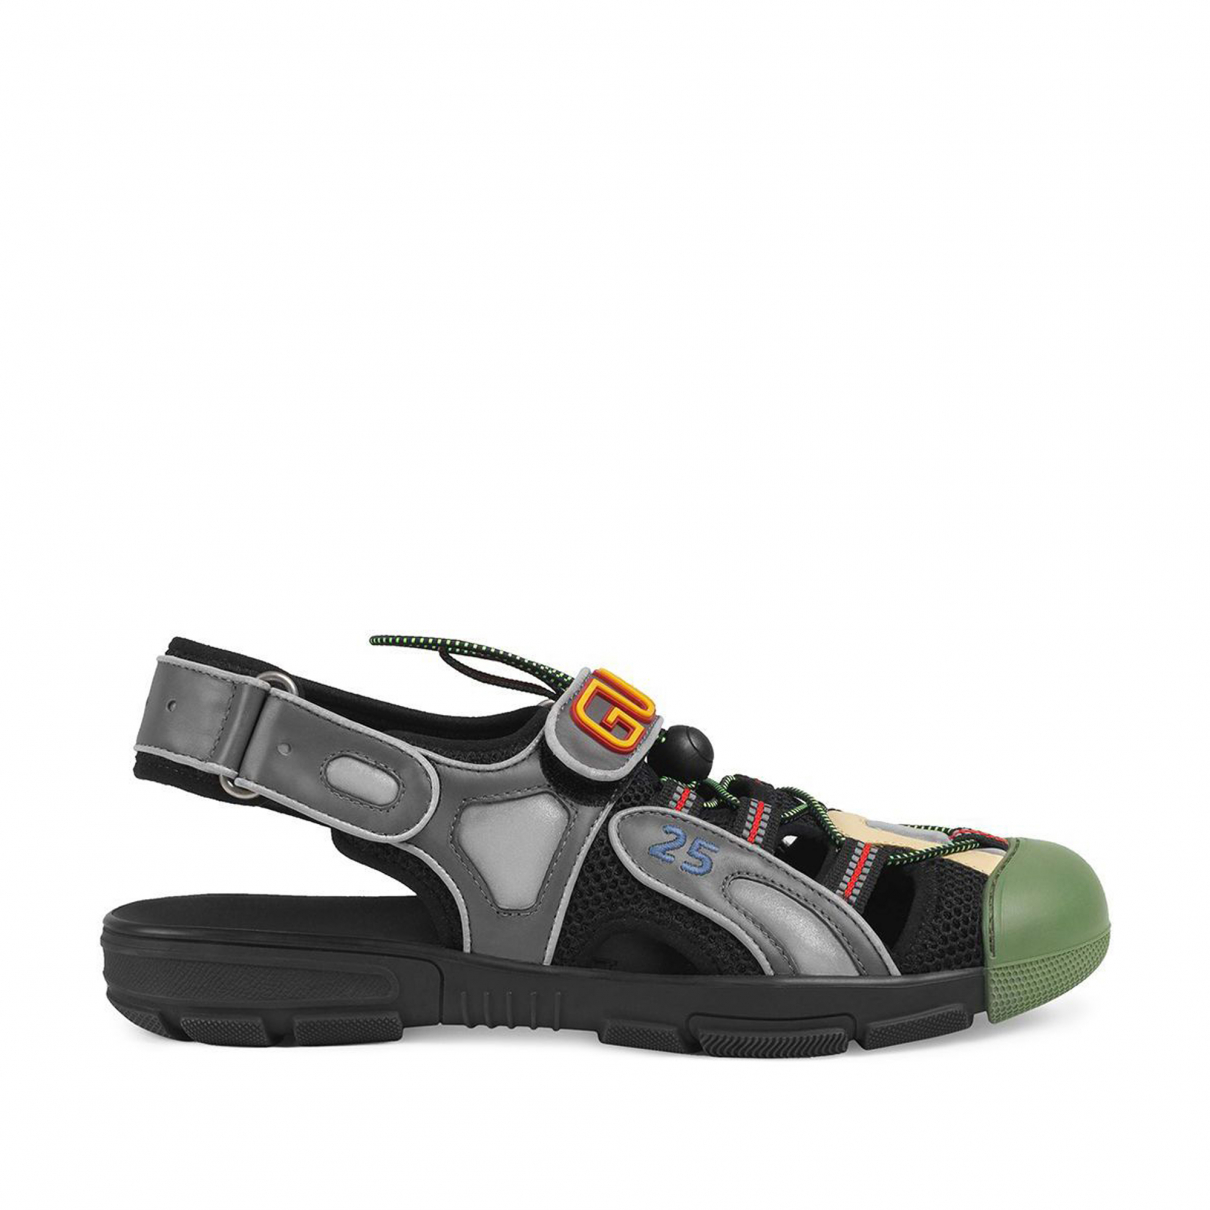 Gucci N Green Leather Sandals for Women 9 US